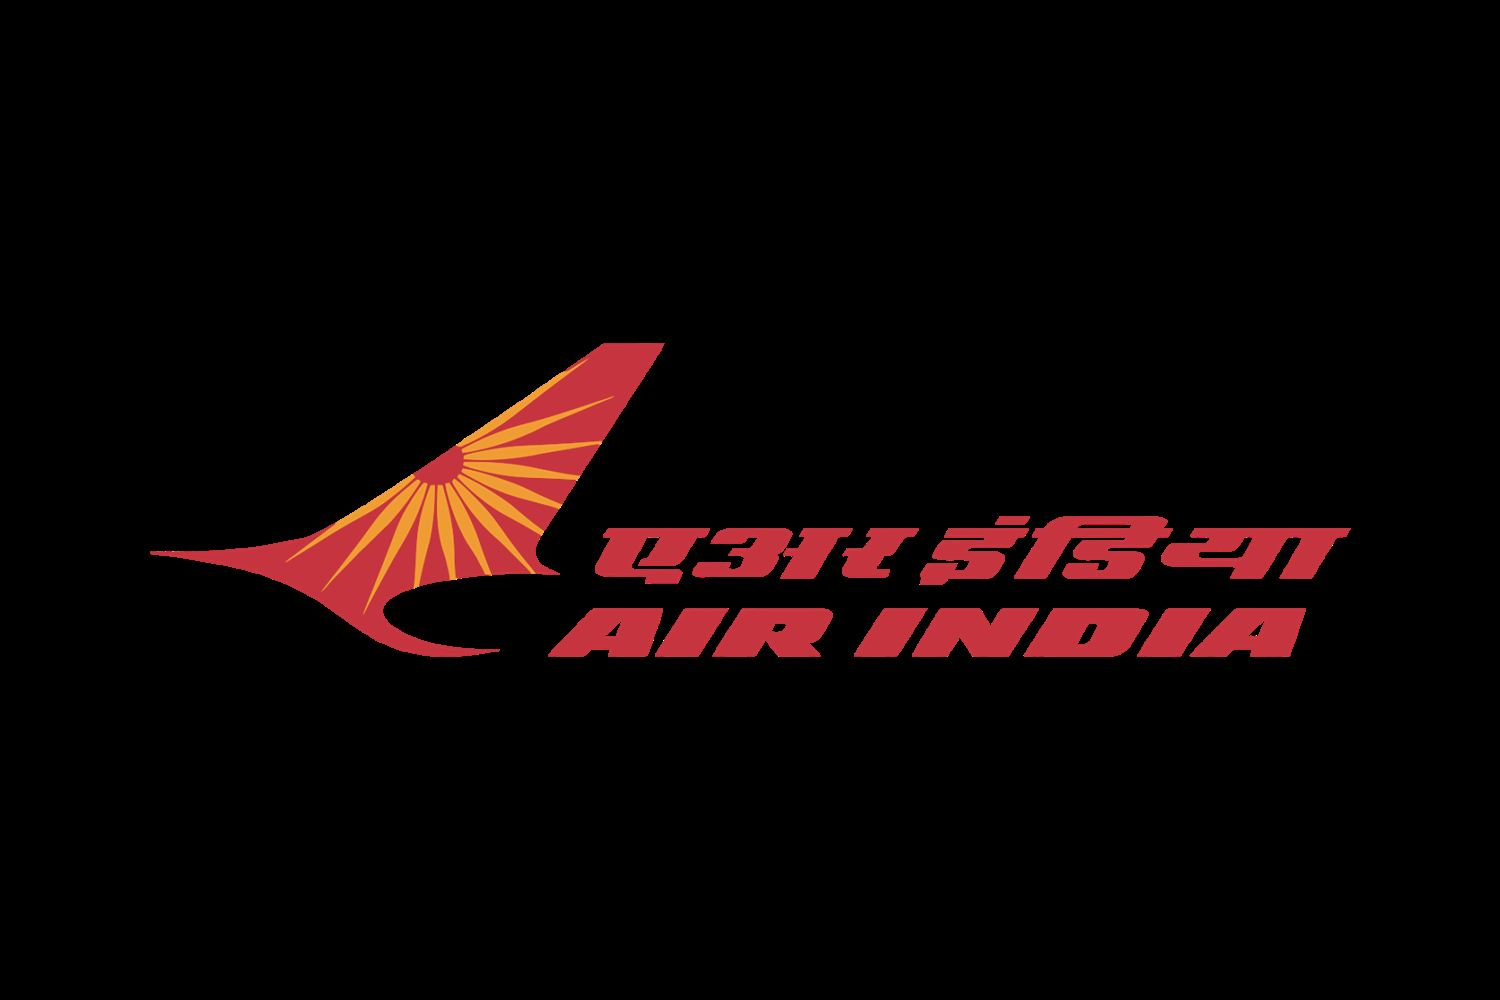 Air India Football Club - Air India FC